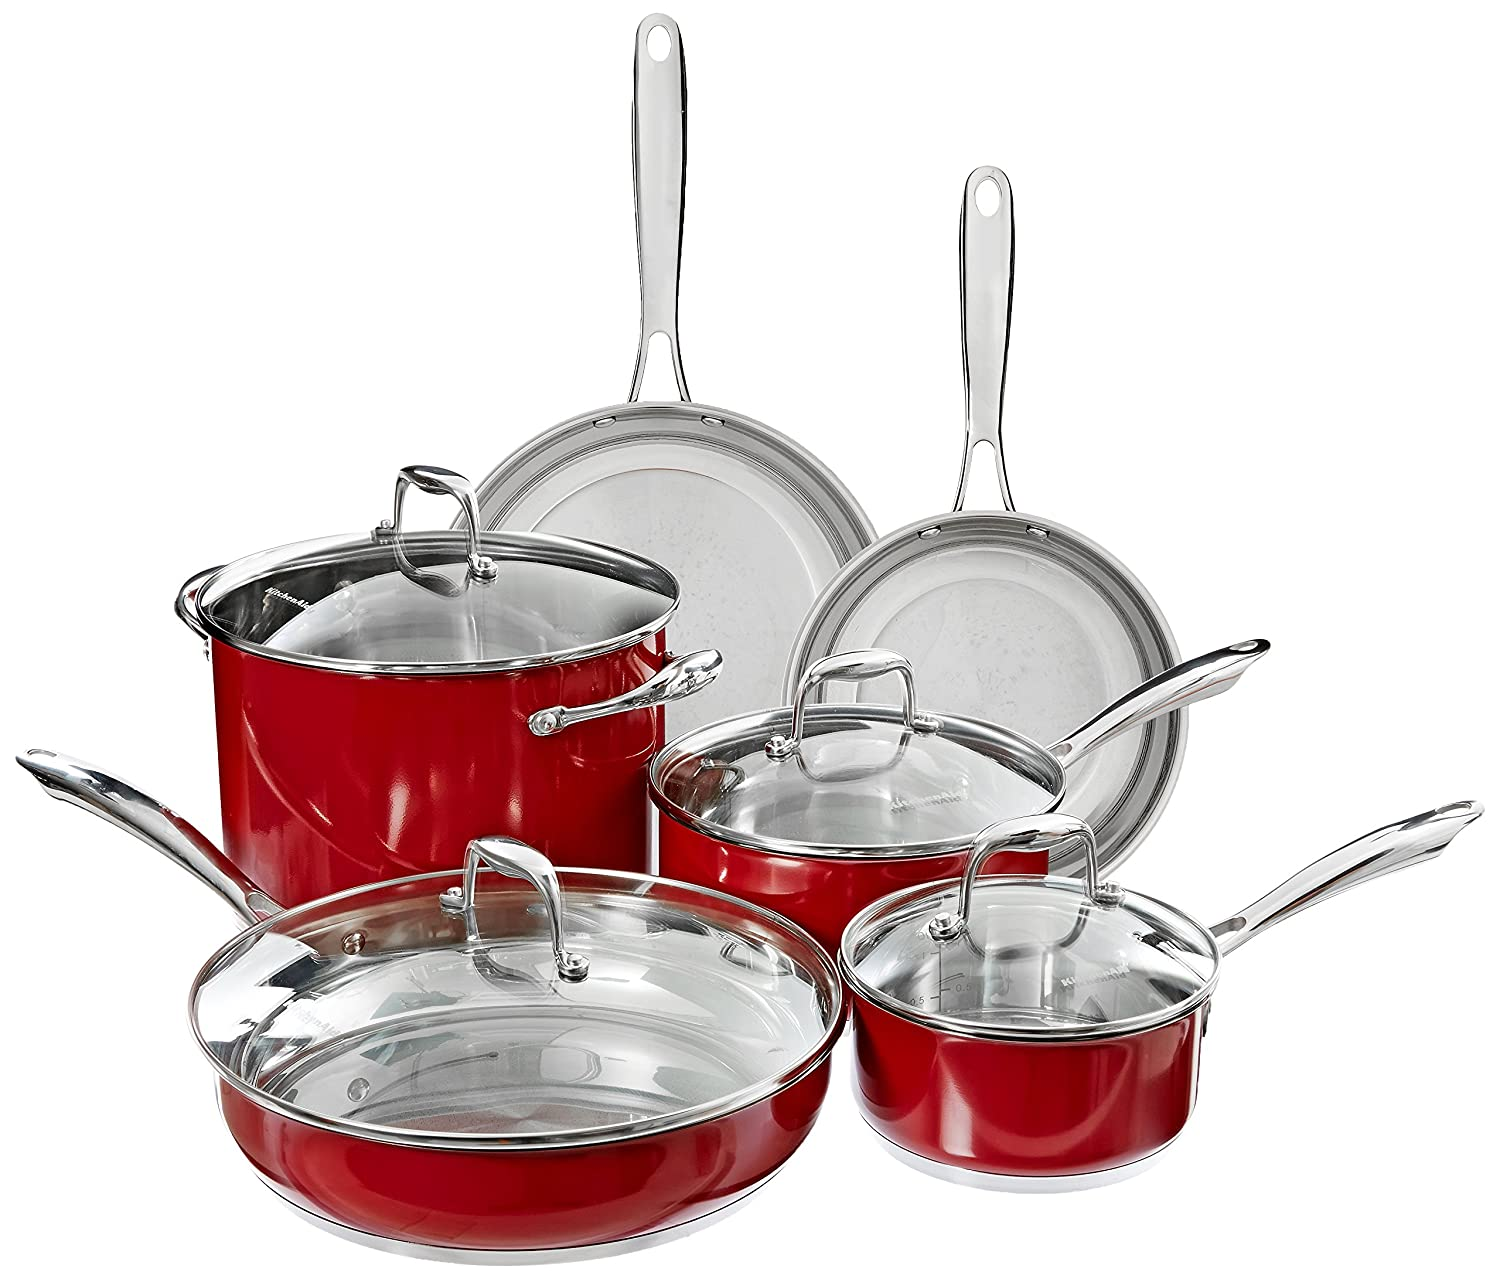 KitchenAid KCS10NKER Stainless Steel 10-Inch Nonstick Skillet Cookware, Empire Red Kitchenaid Kitchen Electrics